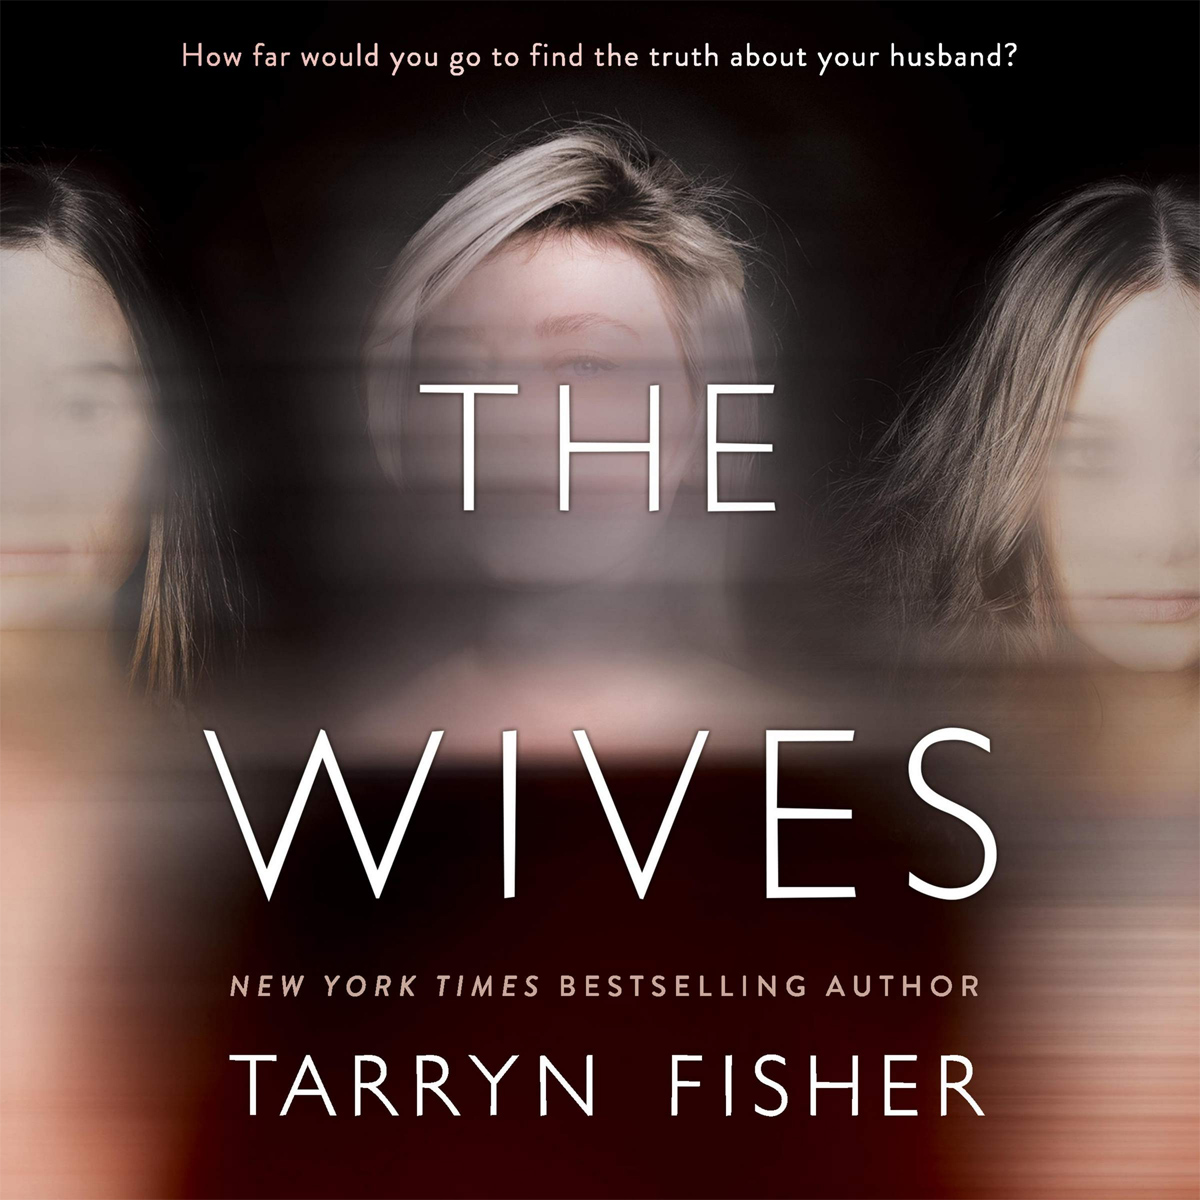 The Wives (Book)